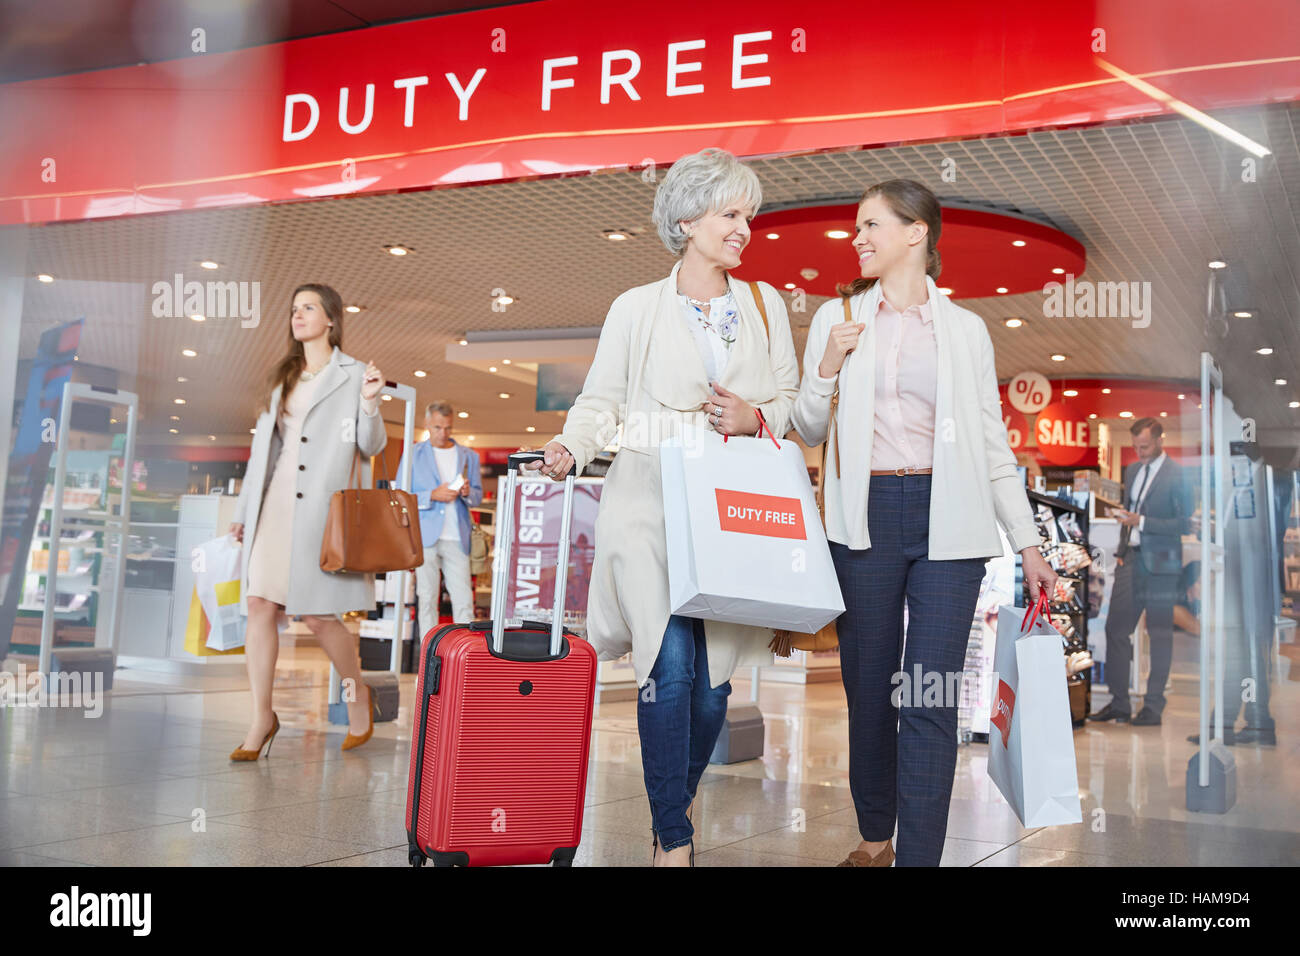 Women leaving airport duty free shop with shopping bags and suitcase - Stock Image